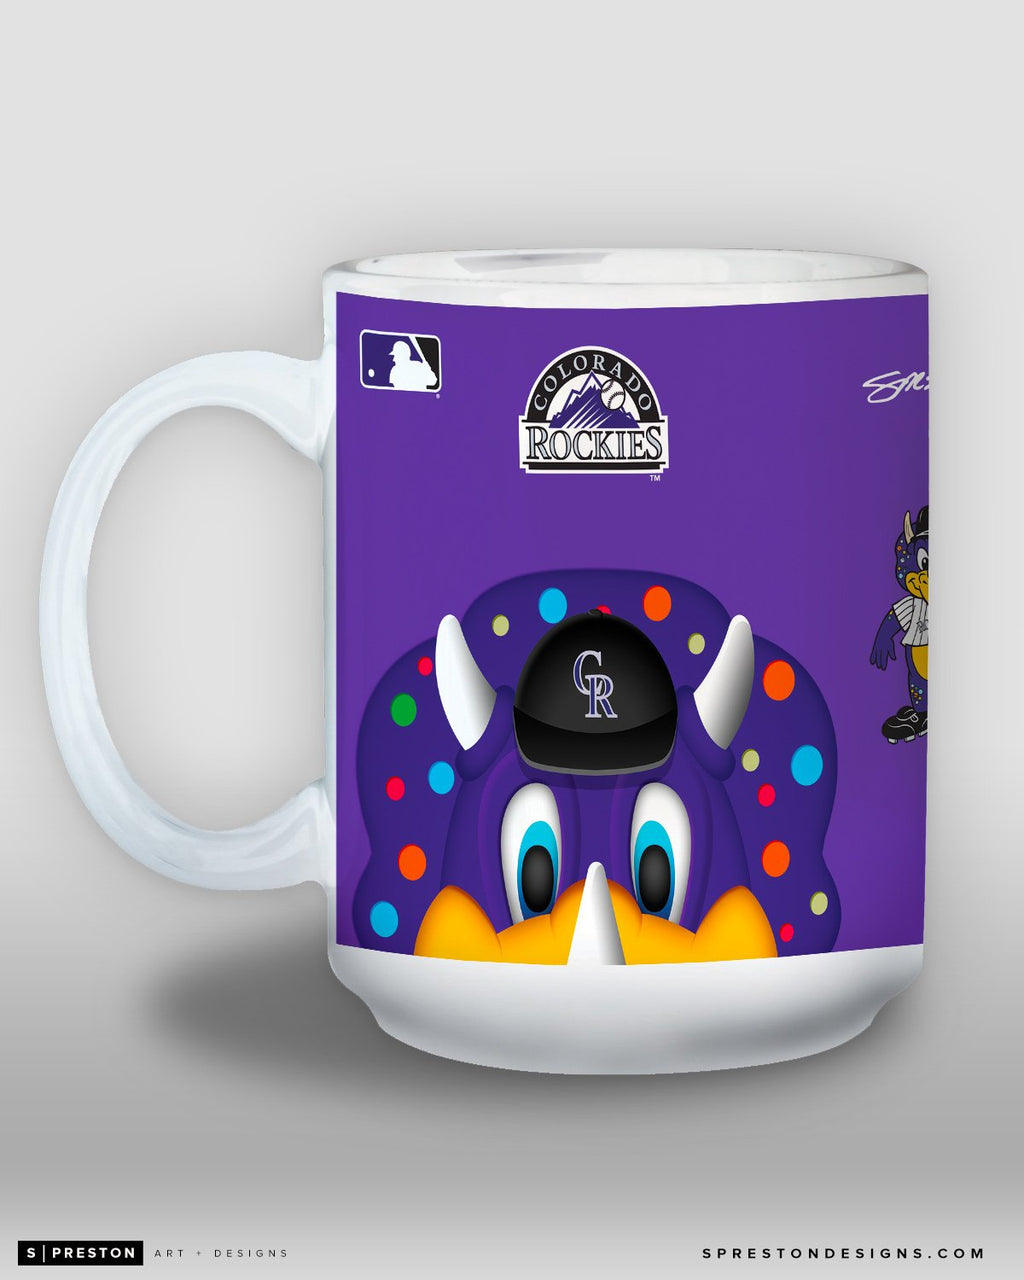 Minimalist Dinger Coffee Mug - MLB Licensed - Colorado Rockies Mascot